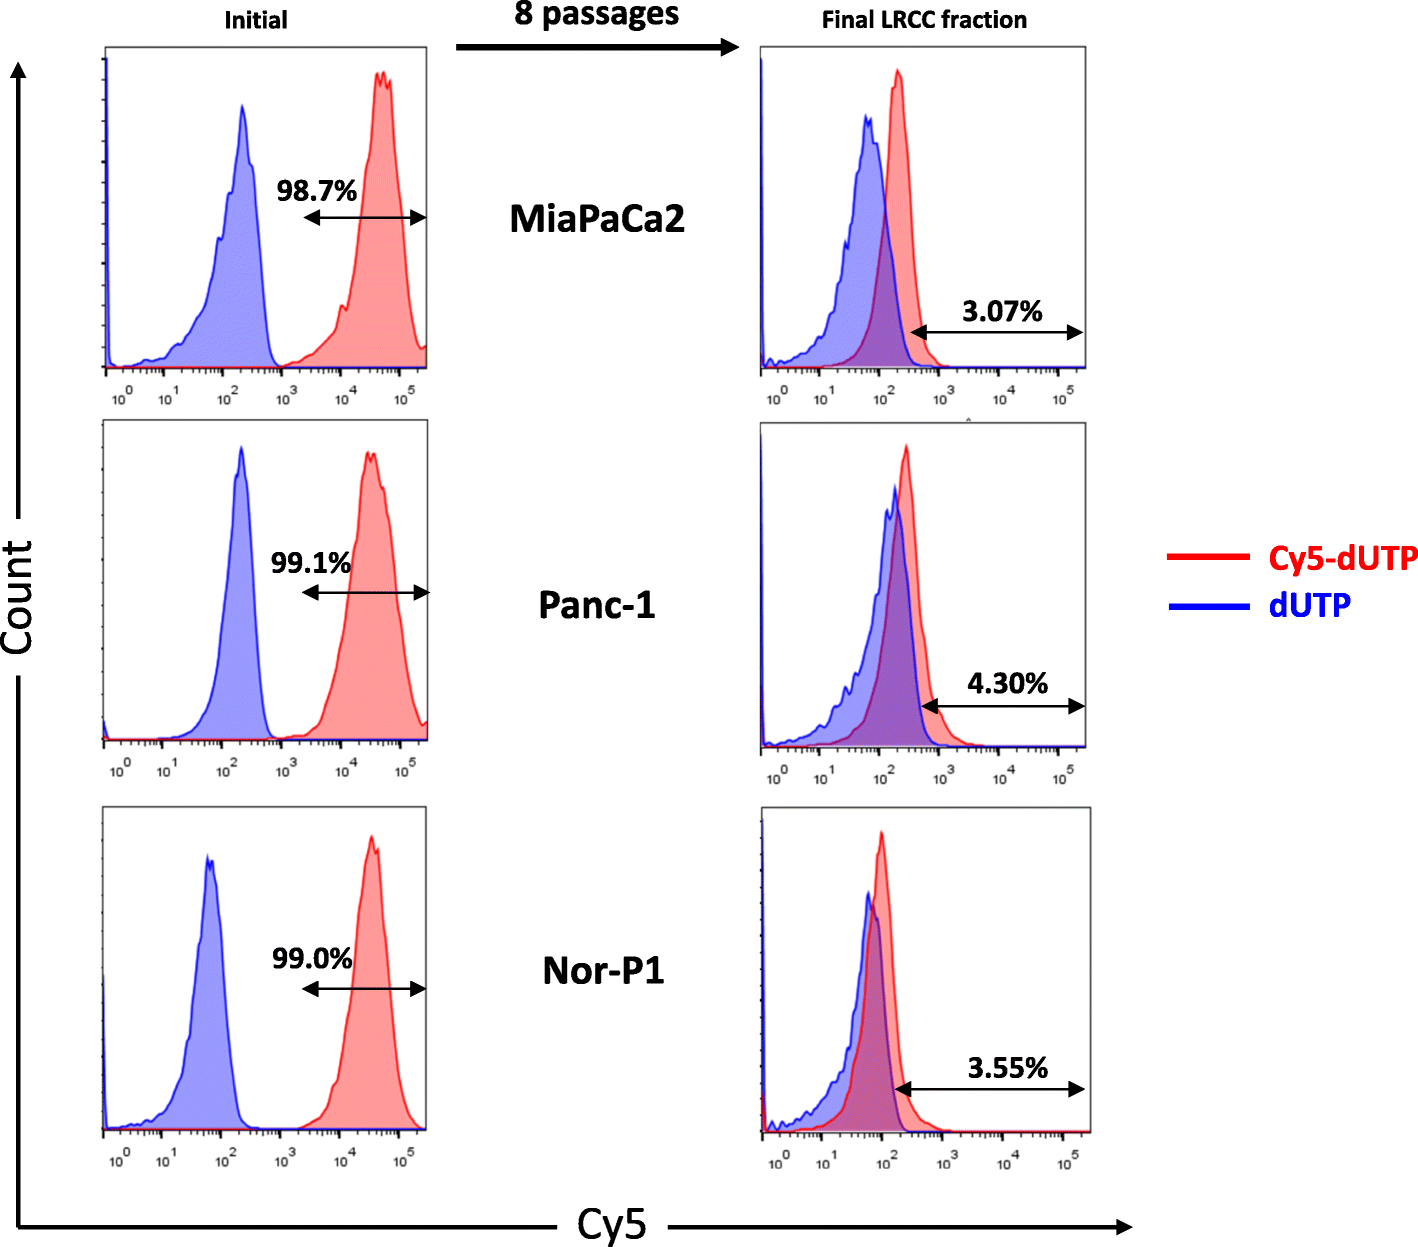 Loss Of Pdpk1 Abrogates Resistance To Gemcitabine In Label Retaining